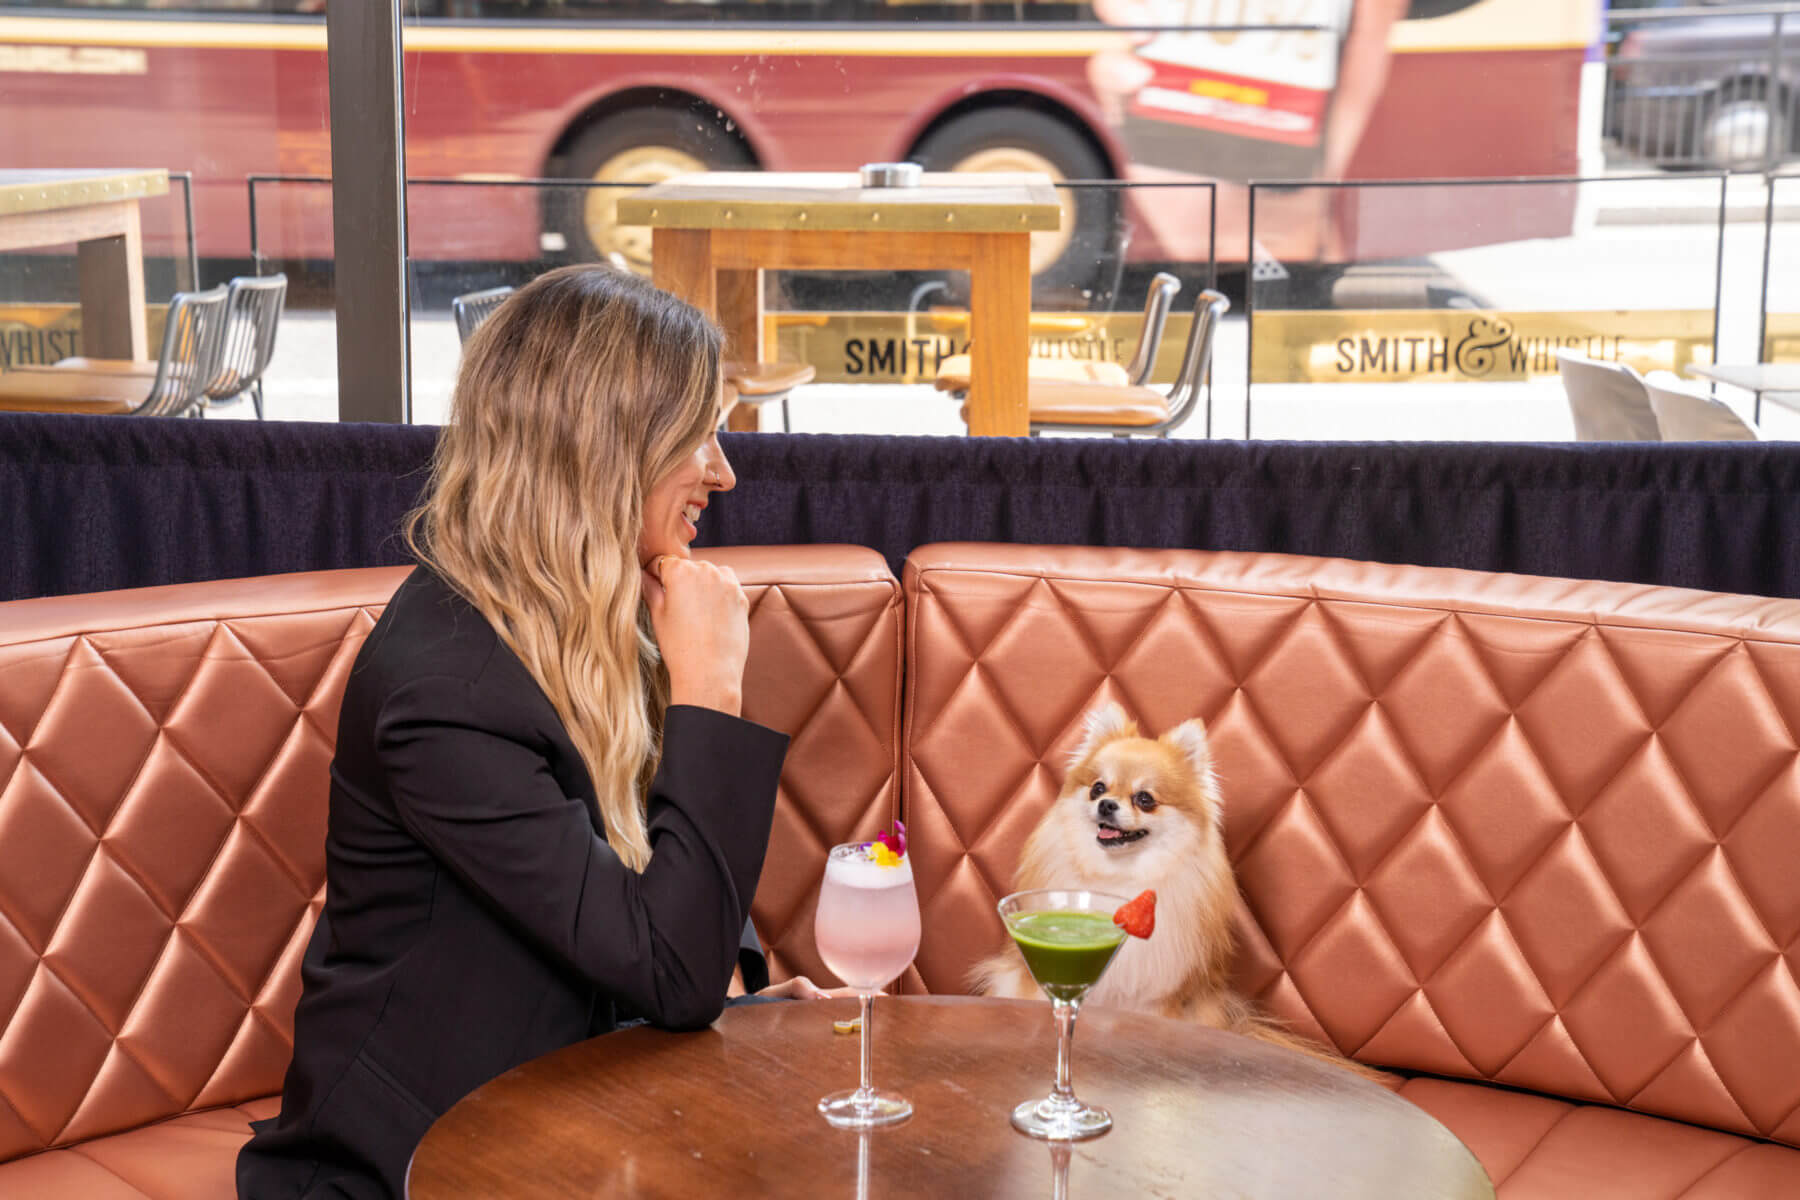 LUXURIA LIFESTYLE REVIEWS THE SHERATON GRAND LONDON PARK LANE, THE PAWFECT STAYCATION FOR YOU AND YOUR POOCH